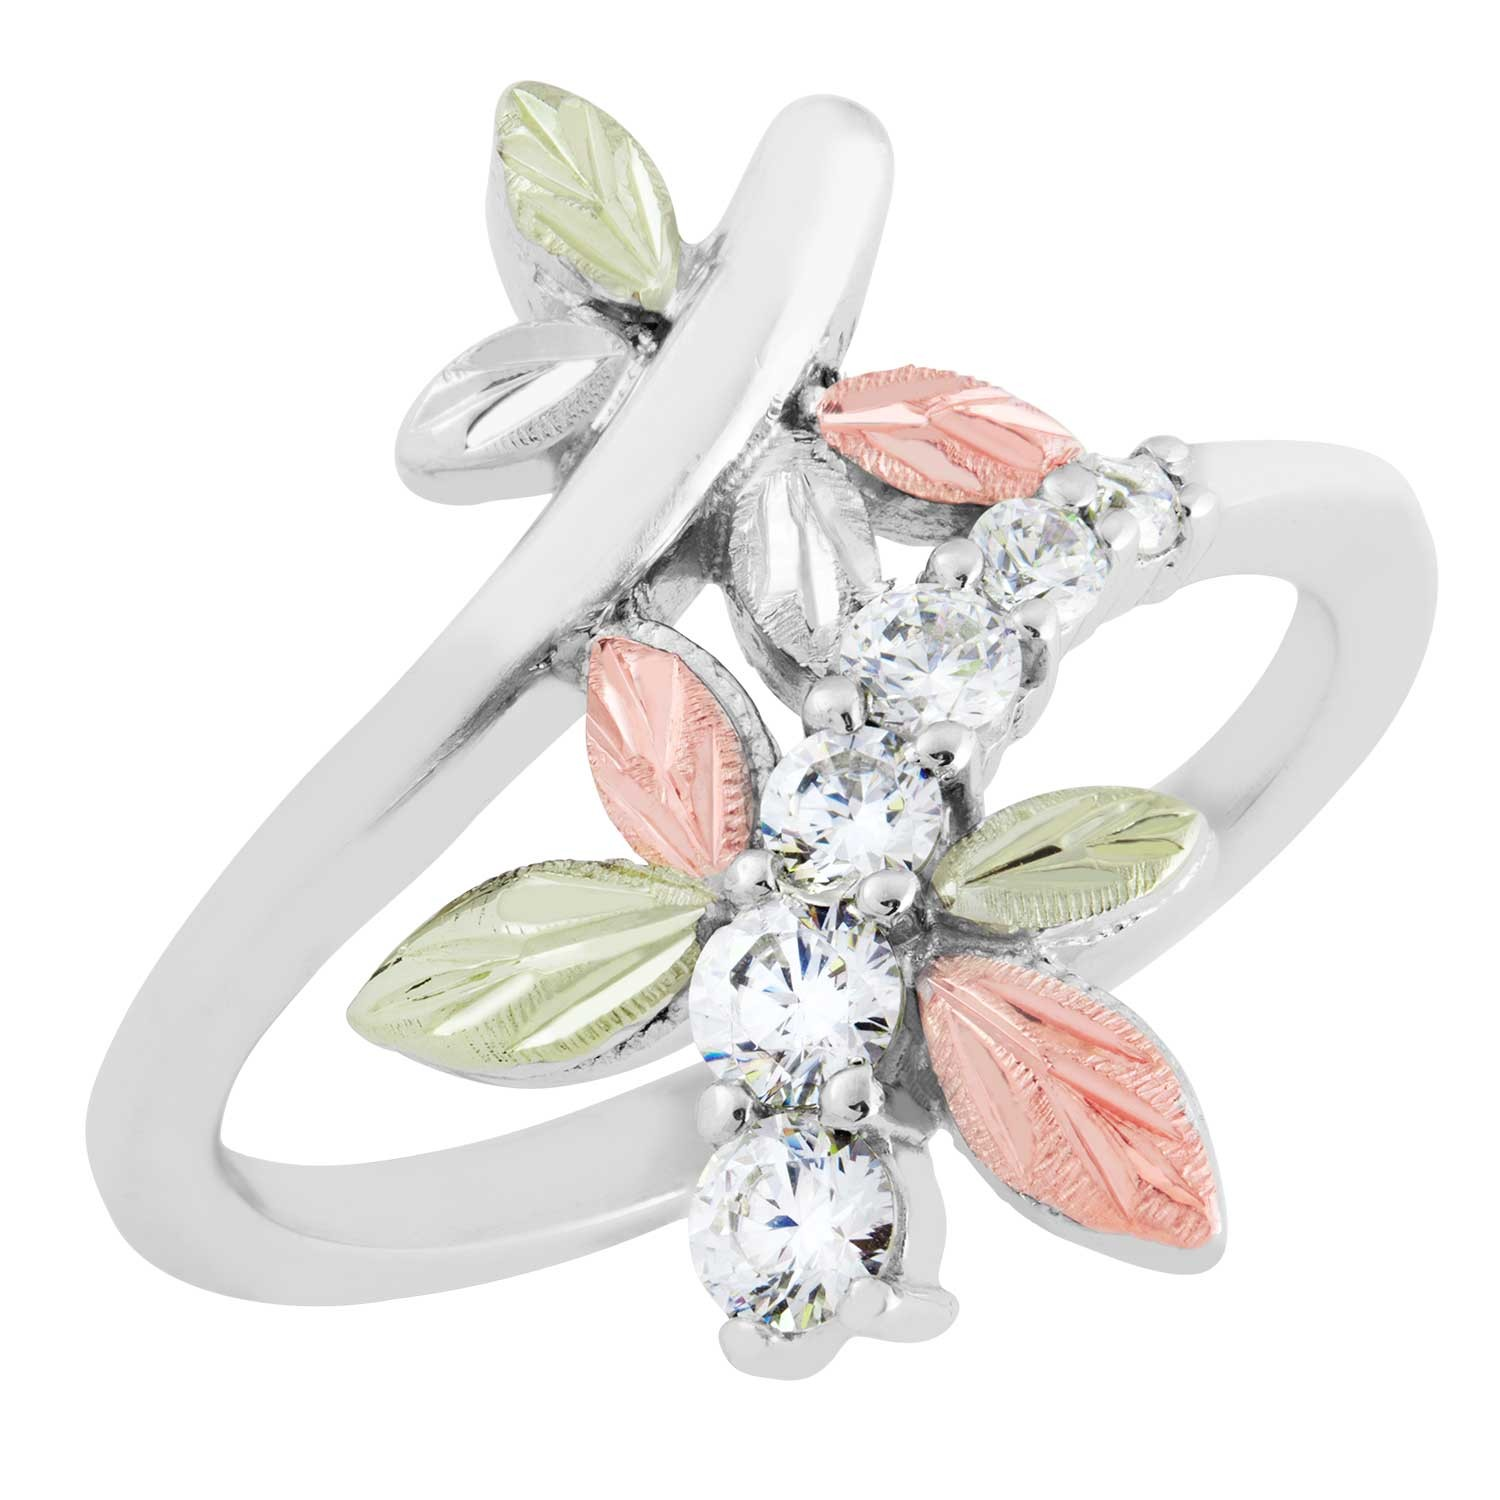 rings bloomsbury ring soleste logo ltd collections page diamond dragonfly sold recently manor g engagement